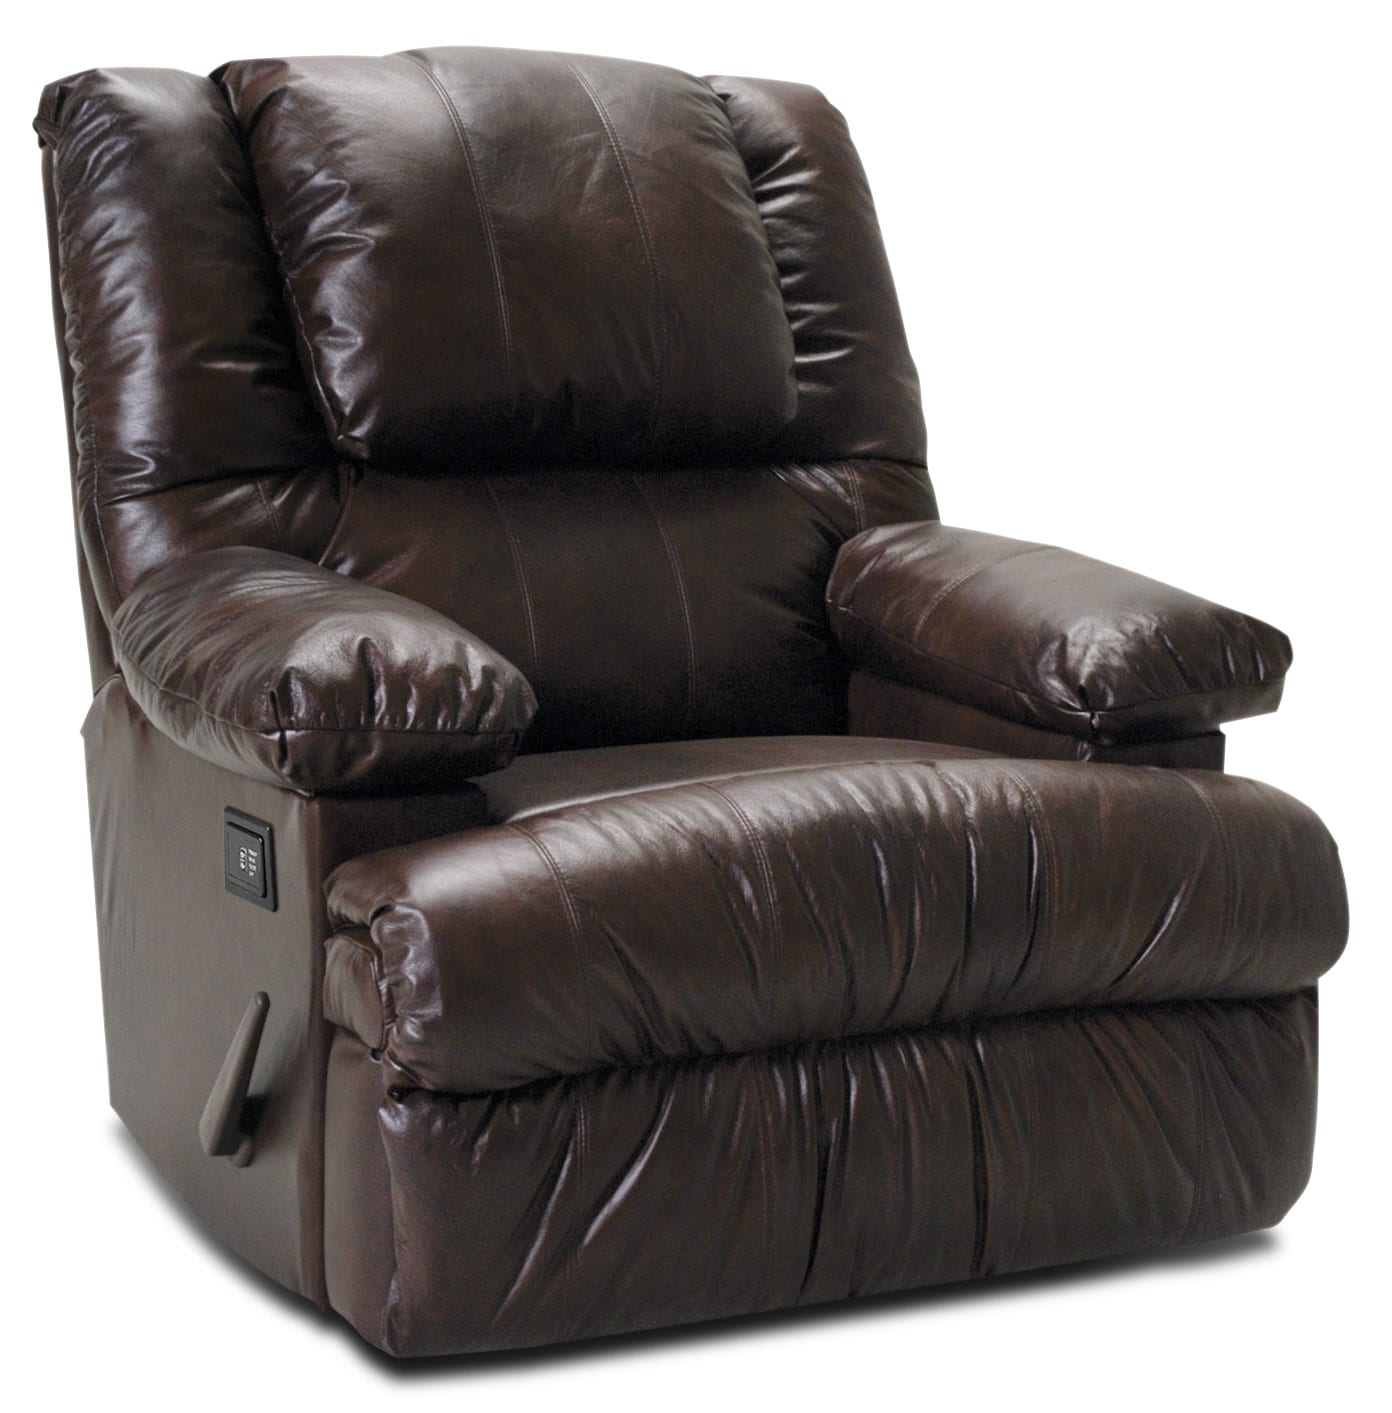 Designed2B Recliner 5598 Genuine Leather Massage Recliner with Storage Arms - Chocolate